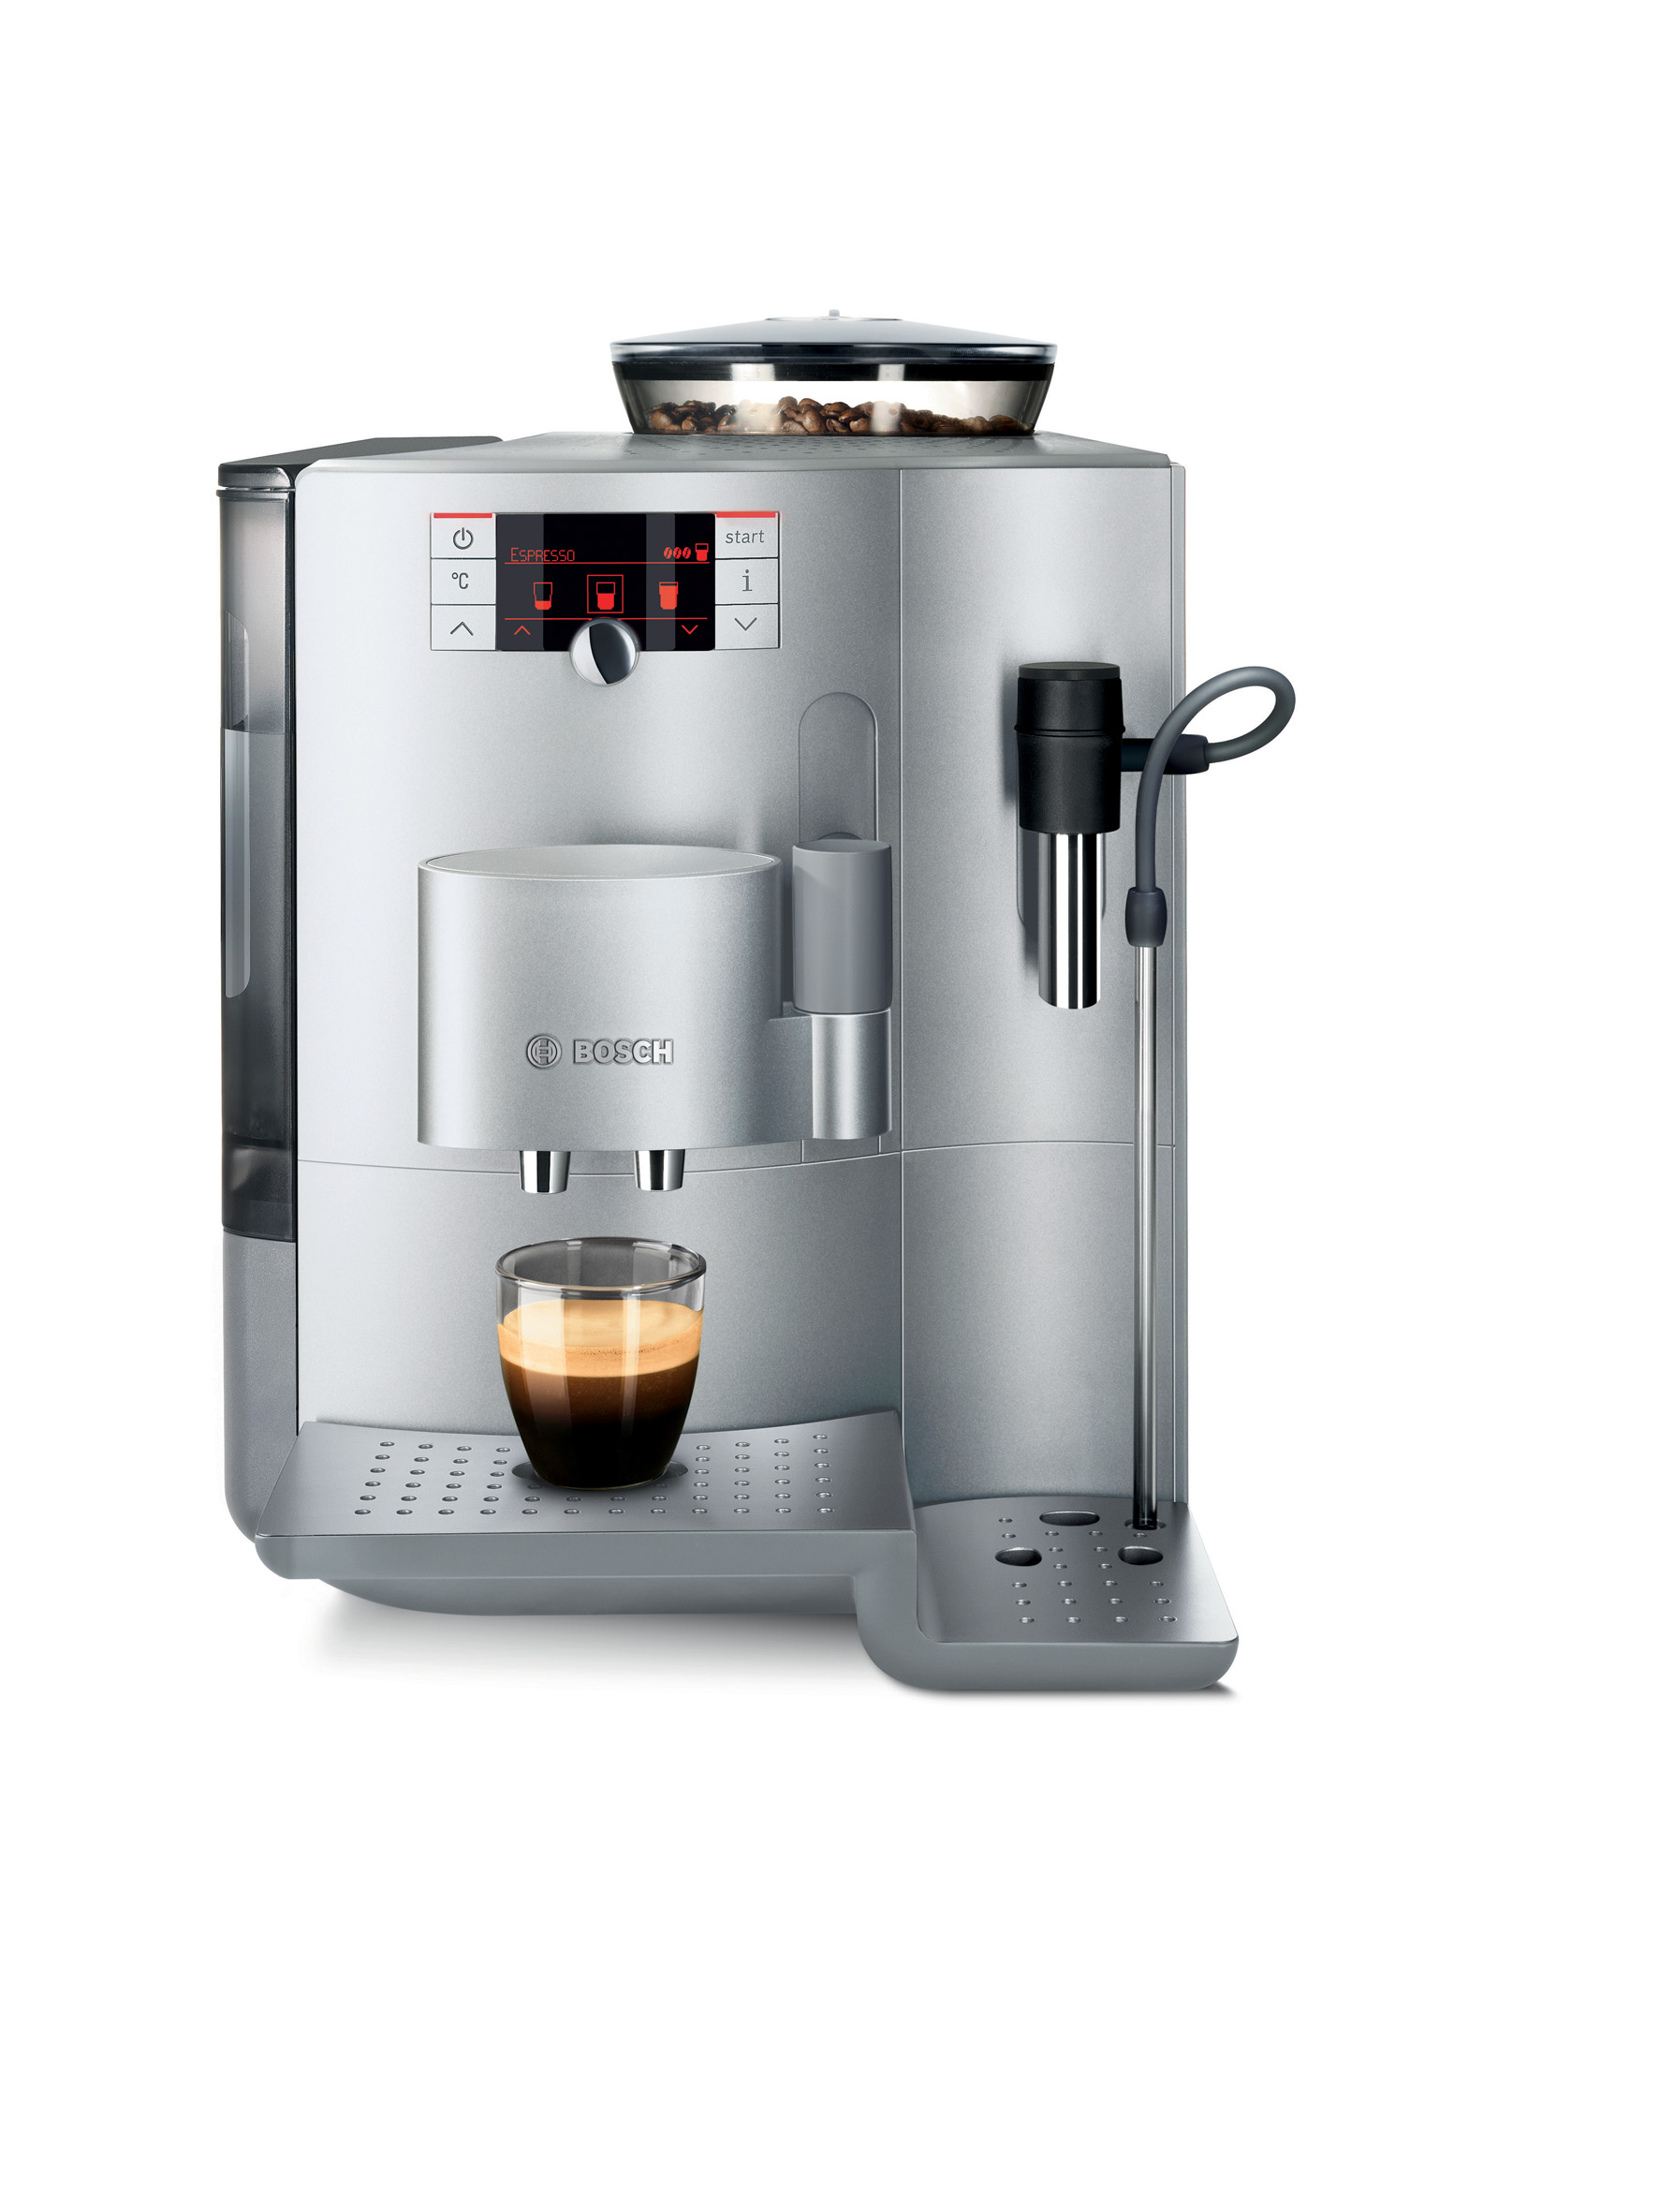 bosch kaffeevollautomat verobar 100 mit der note gut 1 8 zum sieg im kaffeevollautomaten test. Black Bedroom Furniture Sets. Home Design Ideas